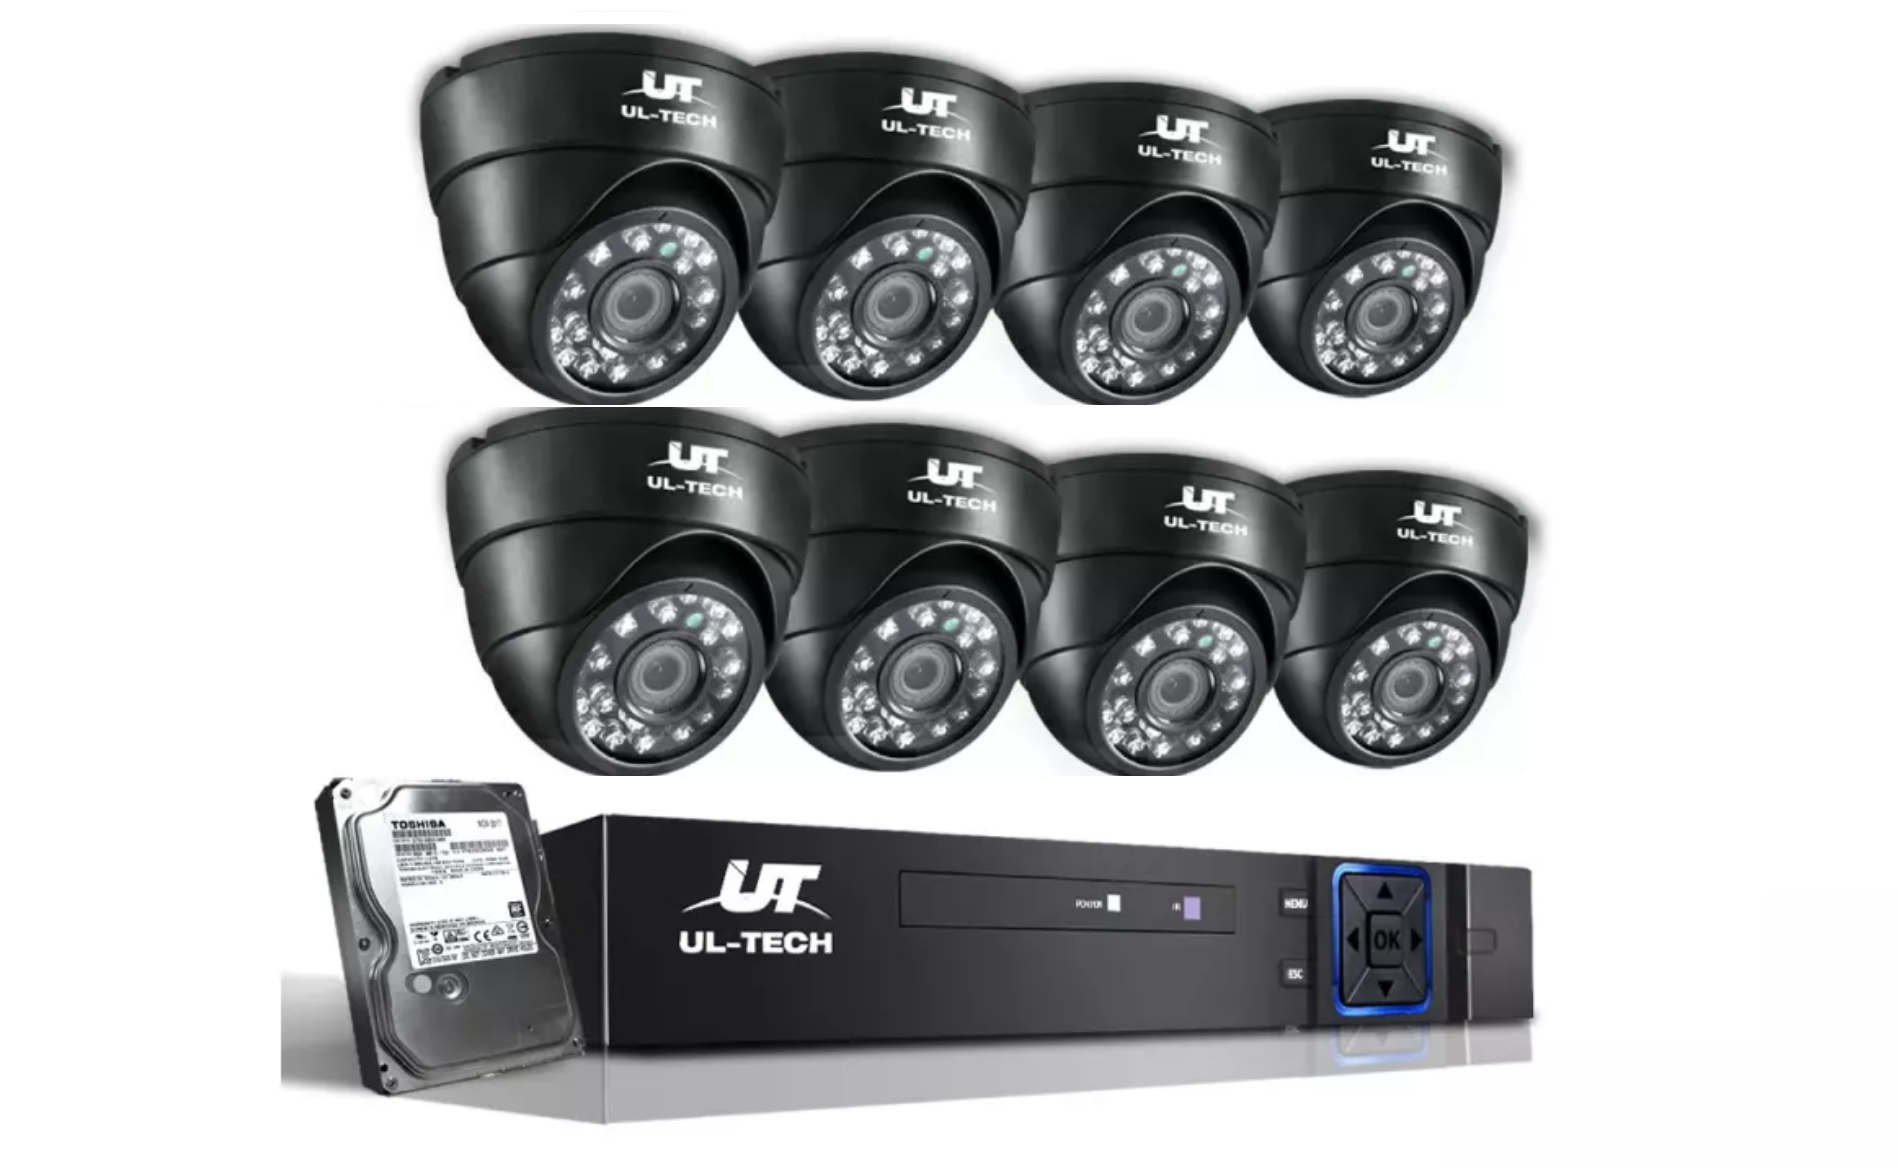 Ul Tech 1080p Dome Security Camera Is In Our Diy Budget Range